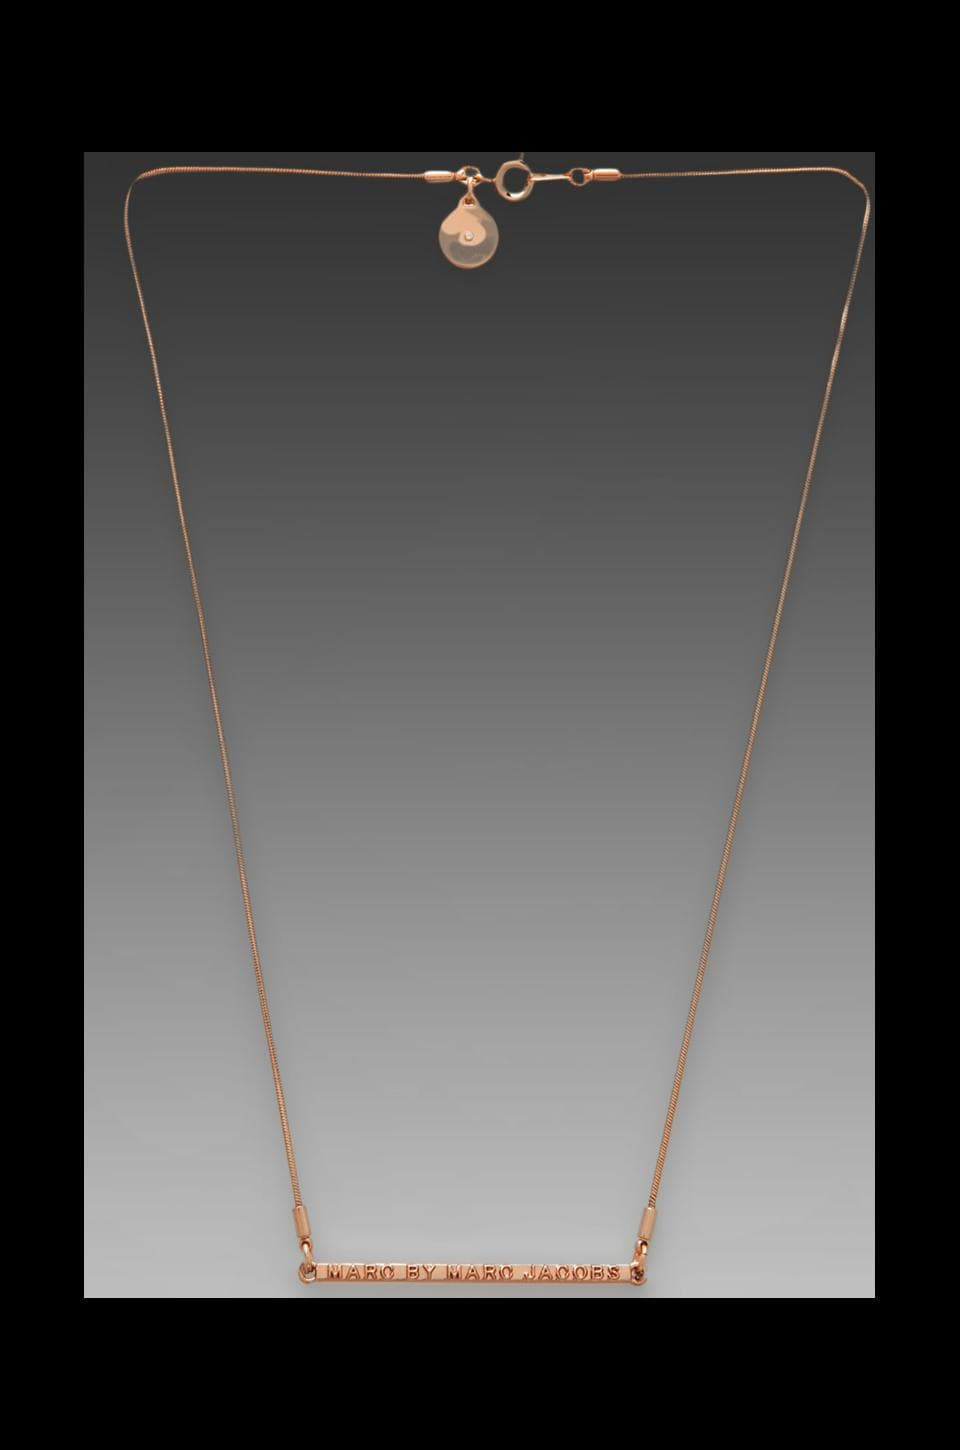 Marc by Marc Jacobs Letterpress Short Necklace in Rose Gold